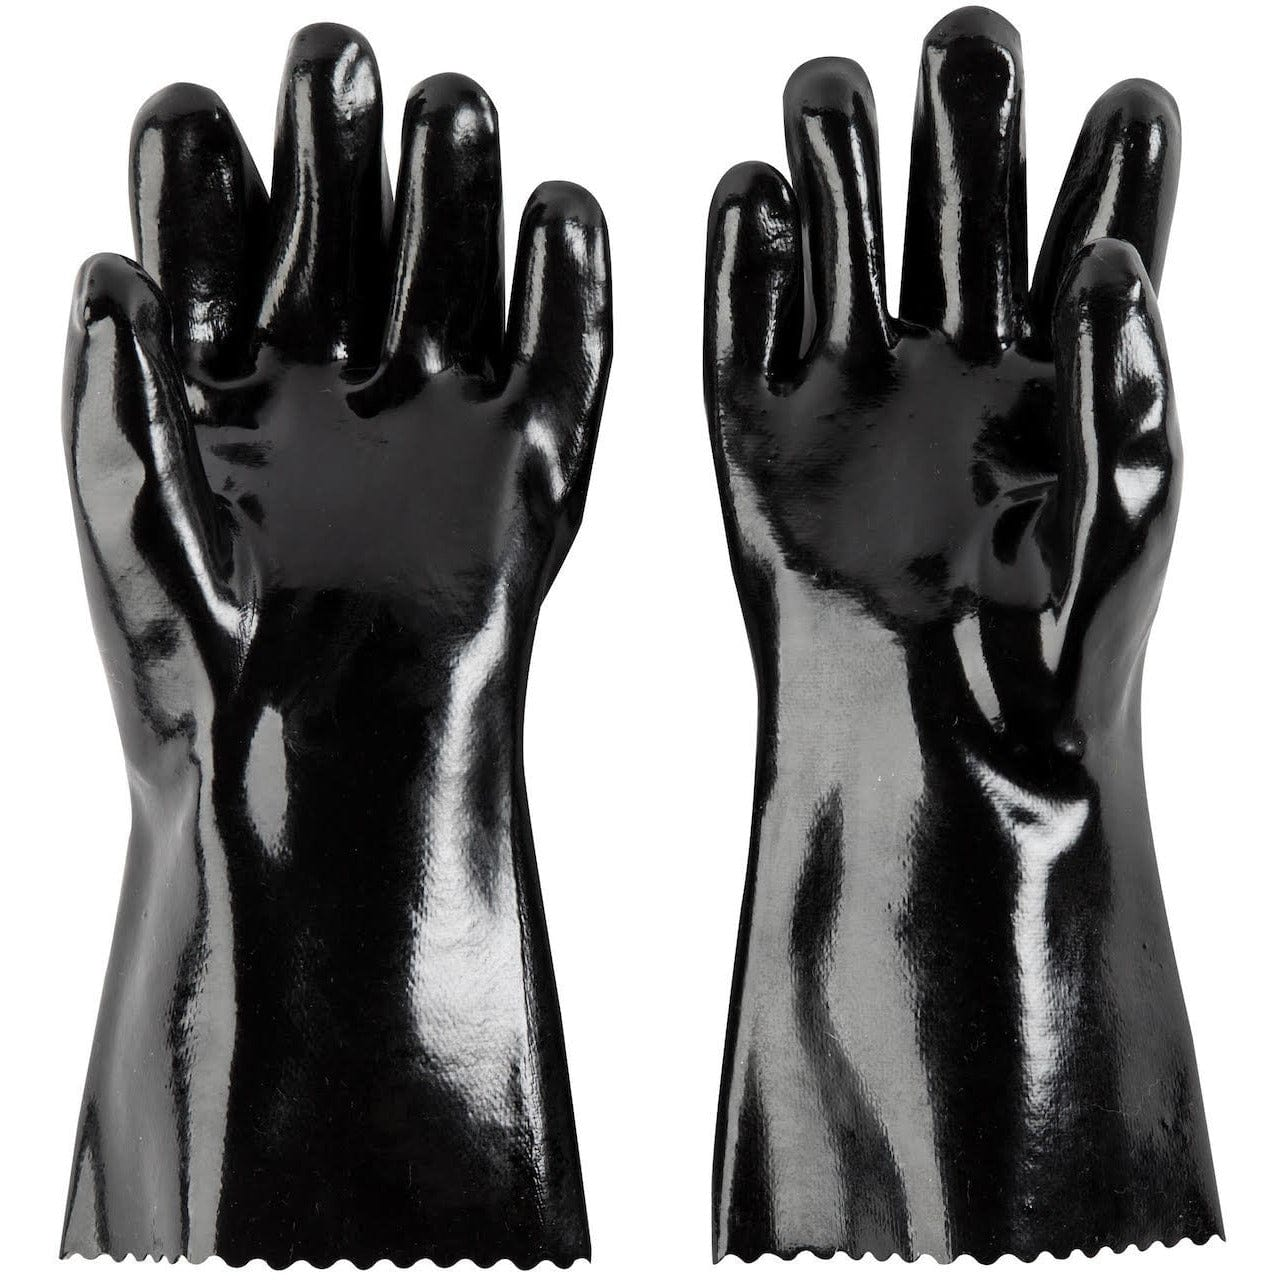 Orion Cooker Insulated Coated BBQ Gloves